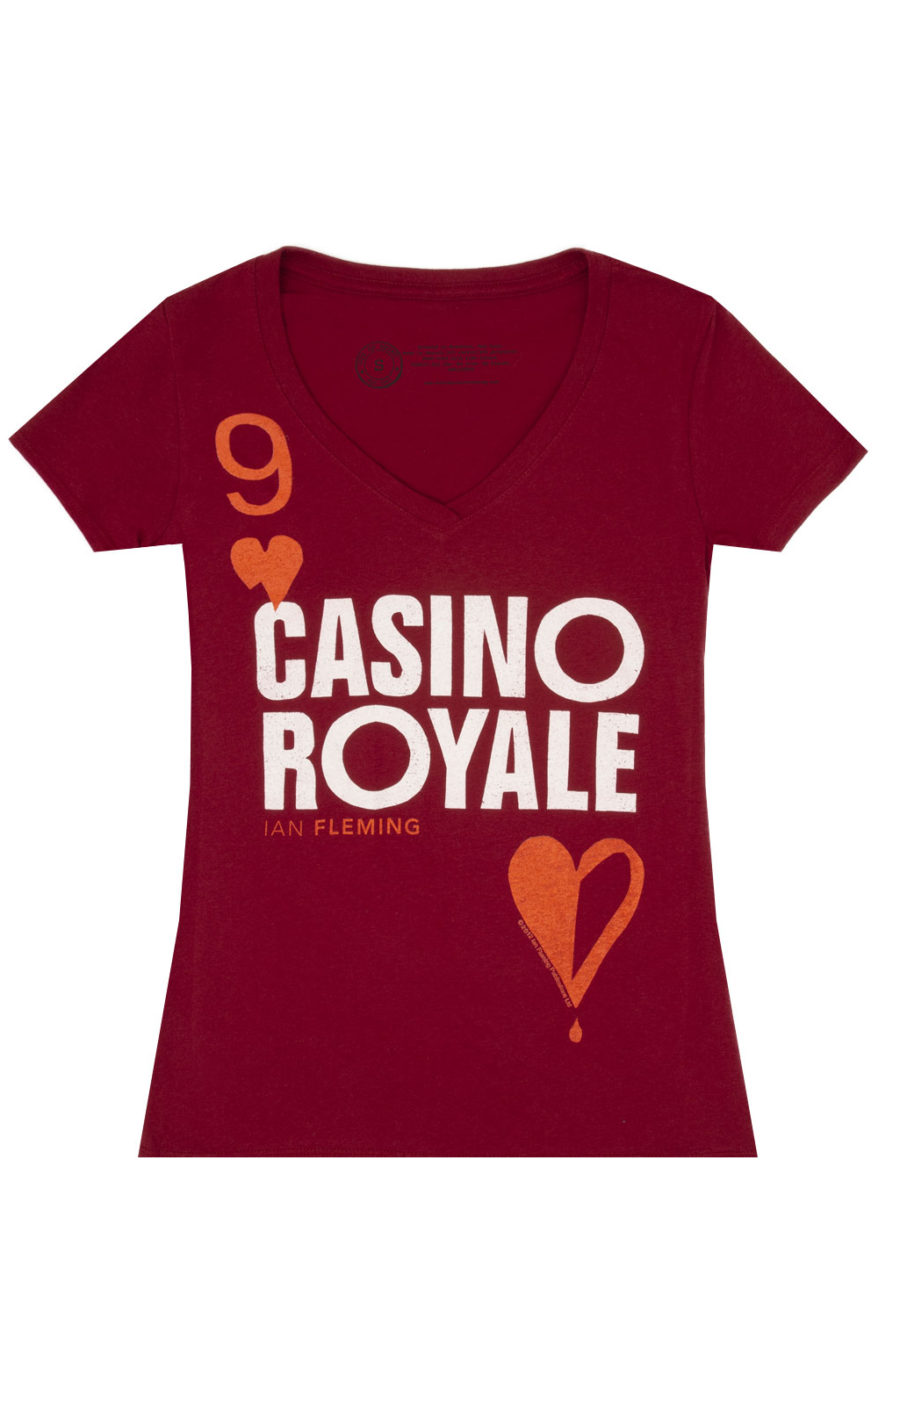 L-1416_casino-royale-james-bond-womens-v-neck-tee_01